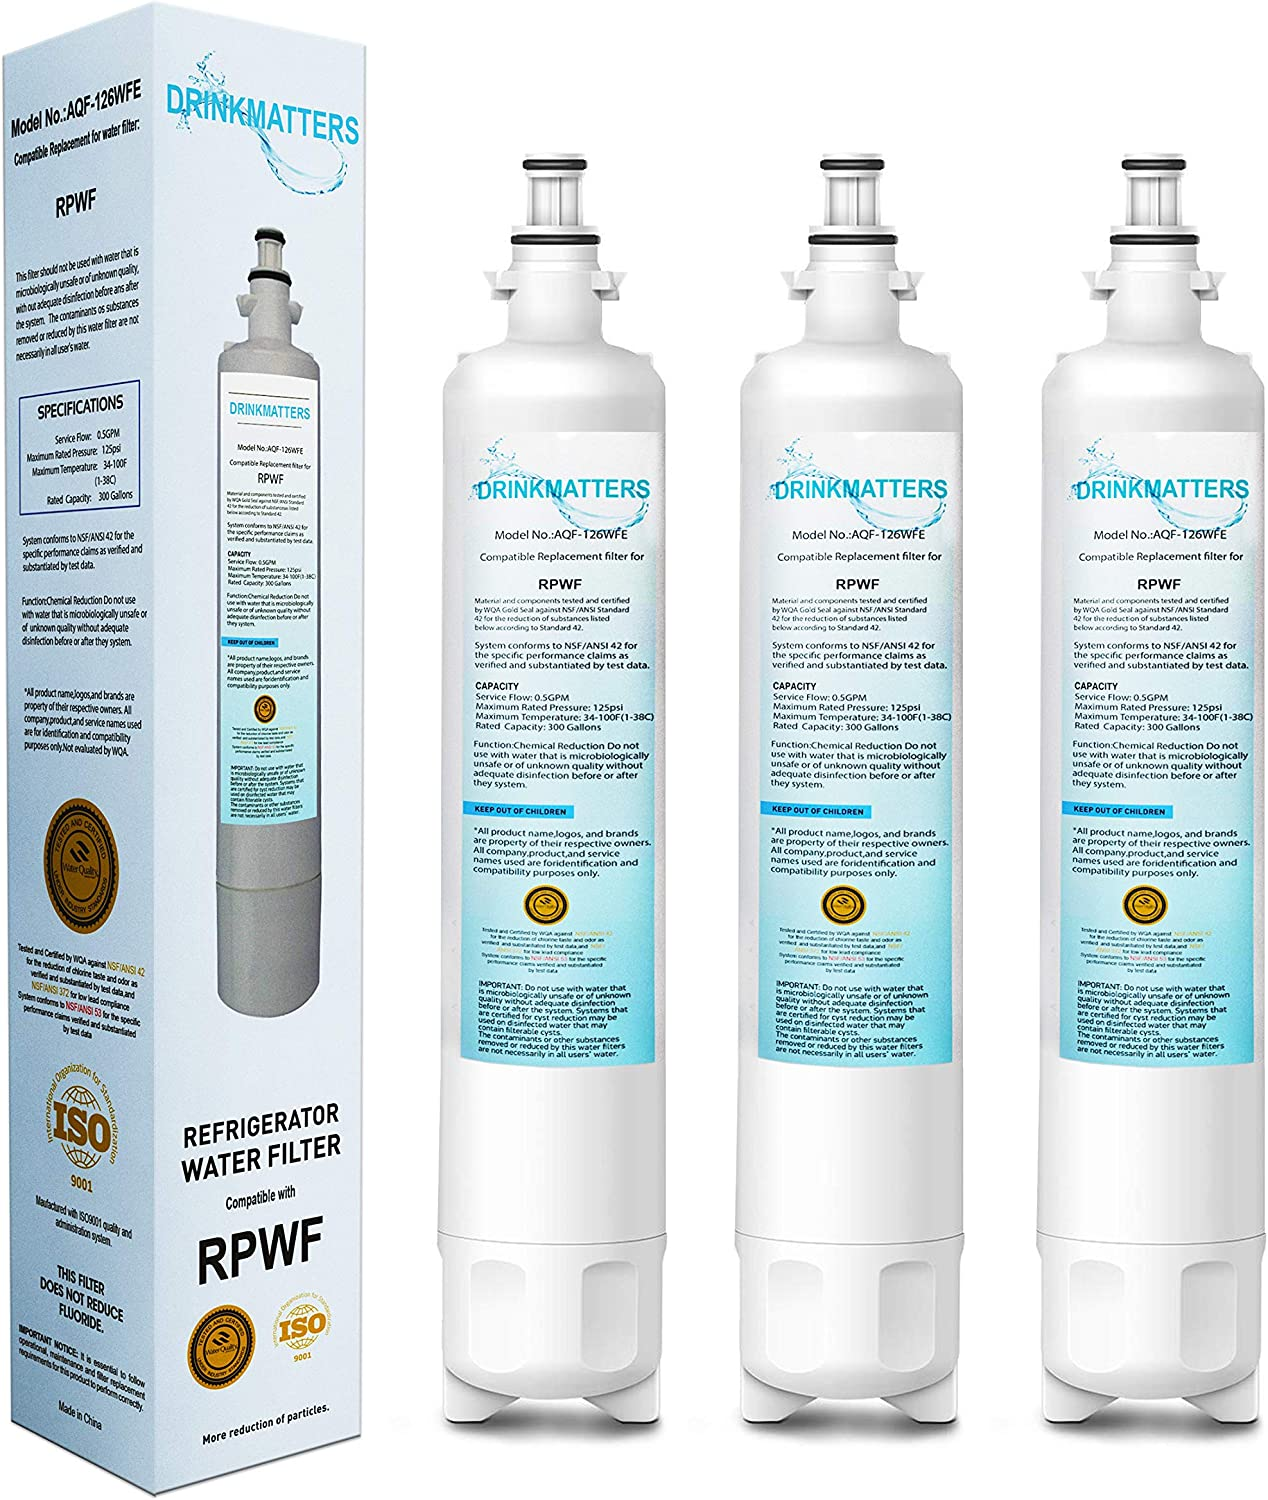 DRINKMATTERS Compatible Refrigerator Water Filter Replacement for GE RPWF (Not RPWFE) - Advanced Filtration Technology - NSF 53&42&372 Certified - PACK of 3